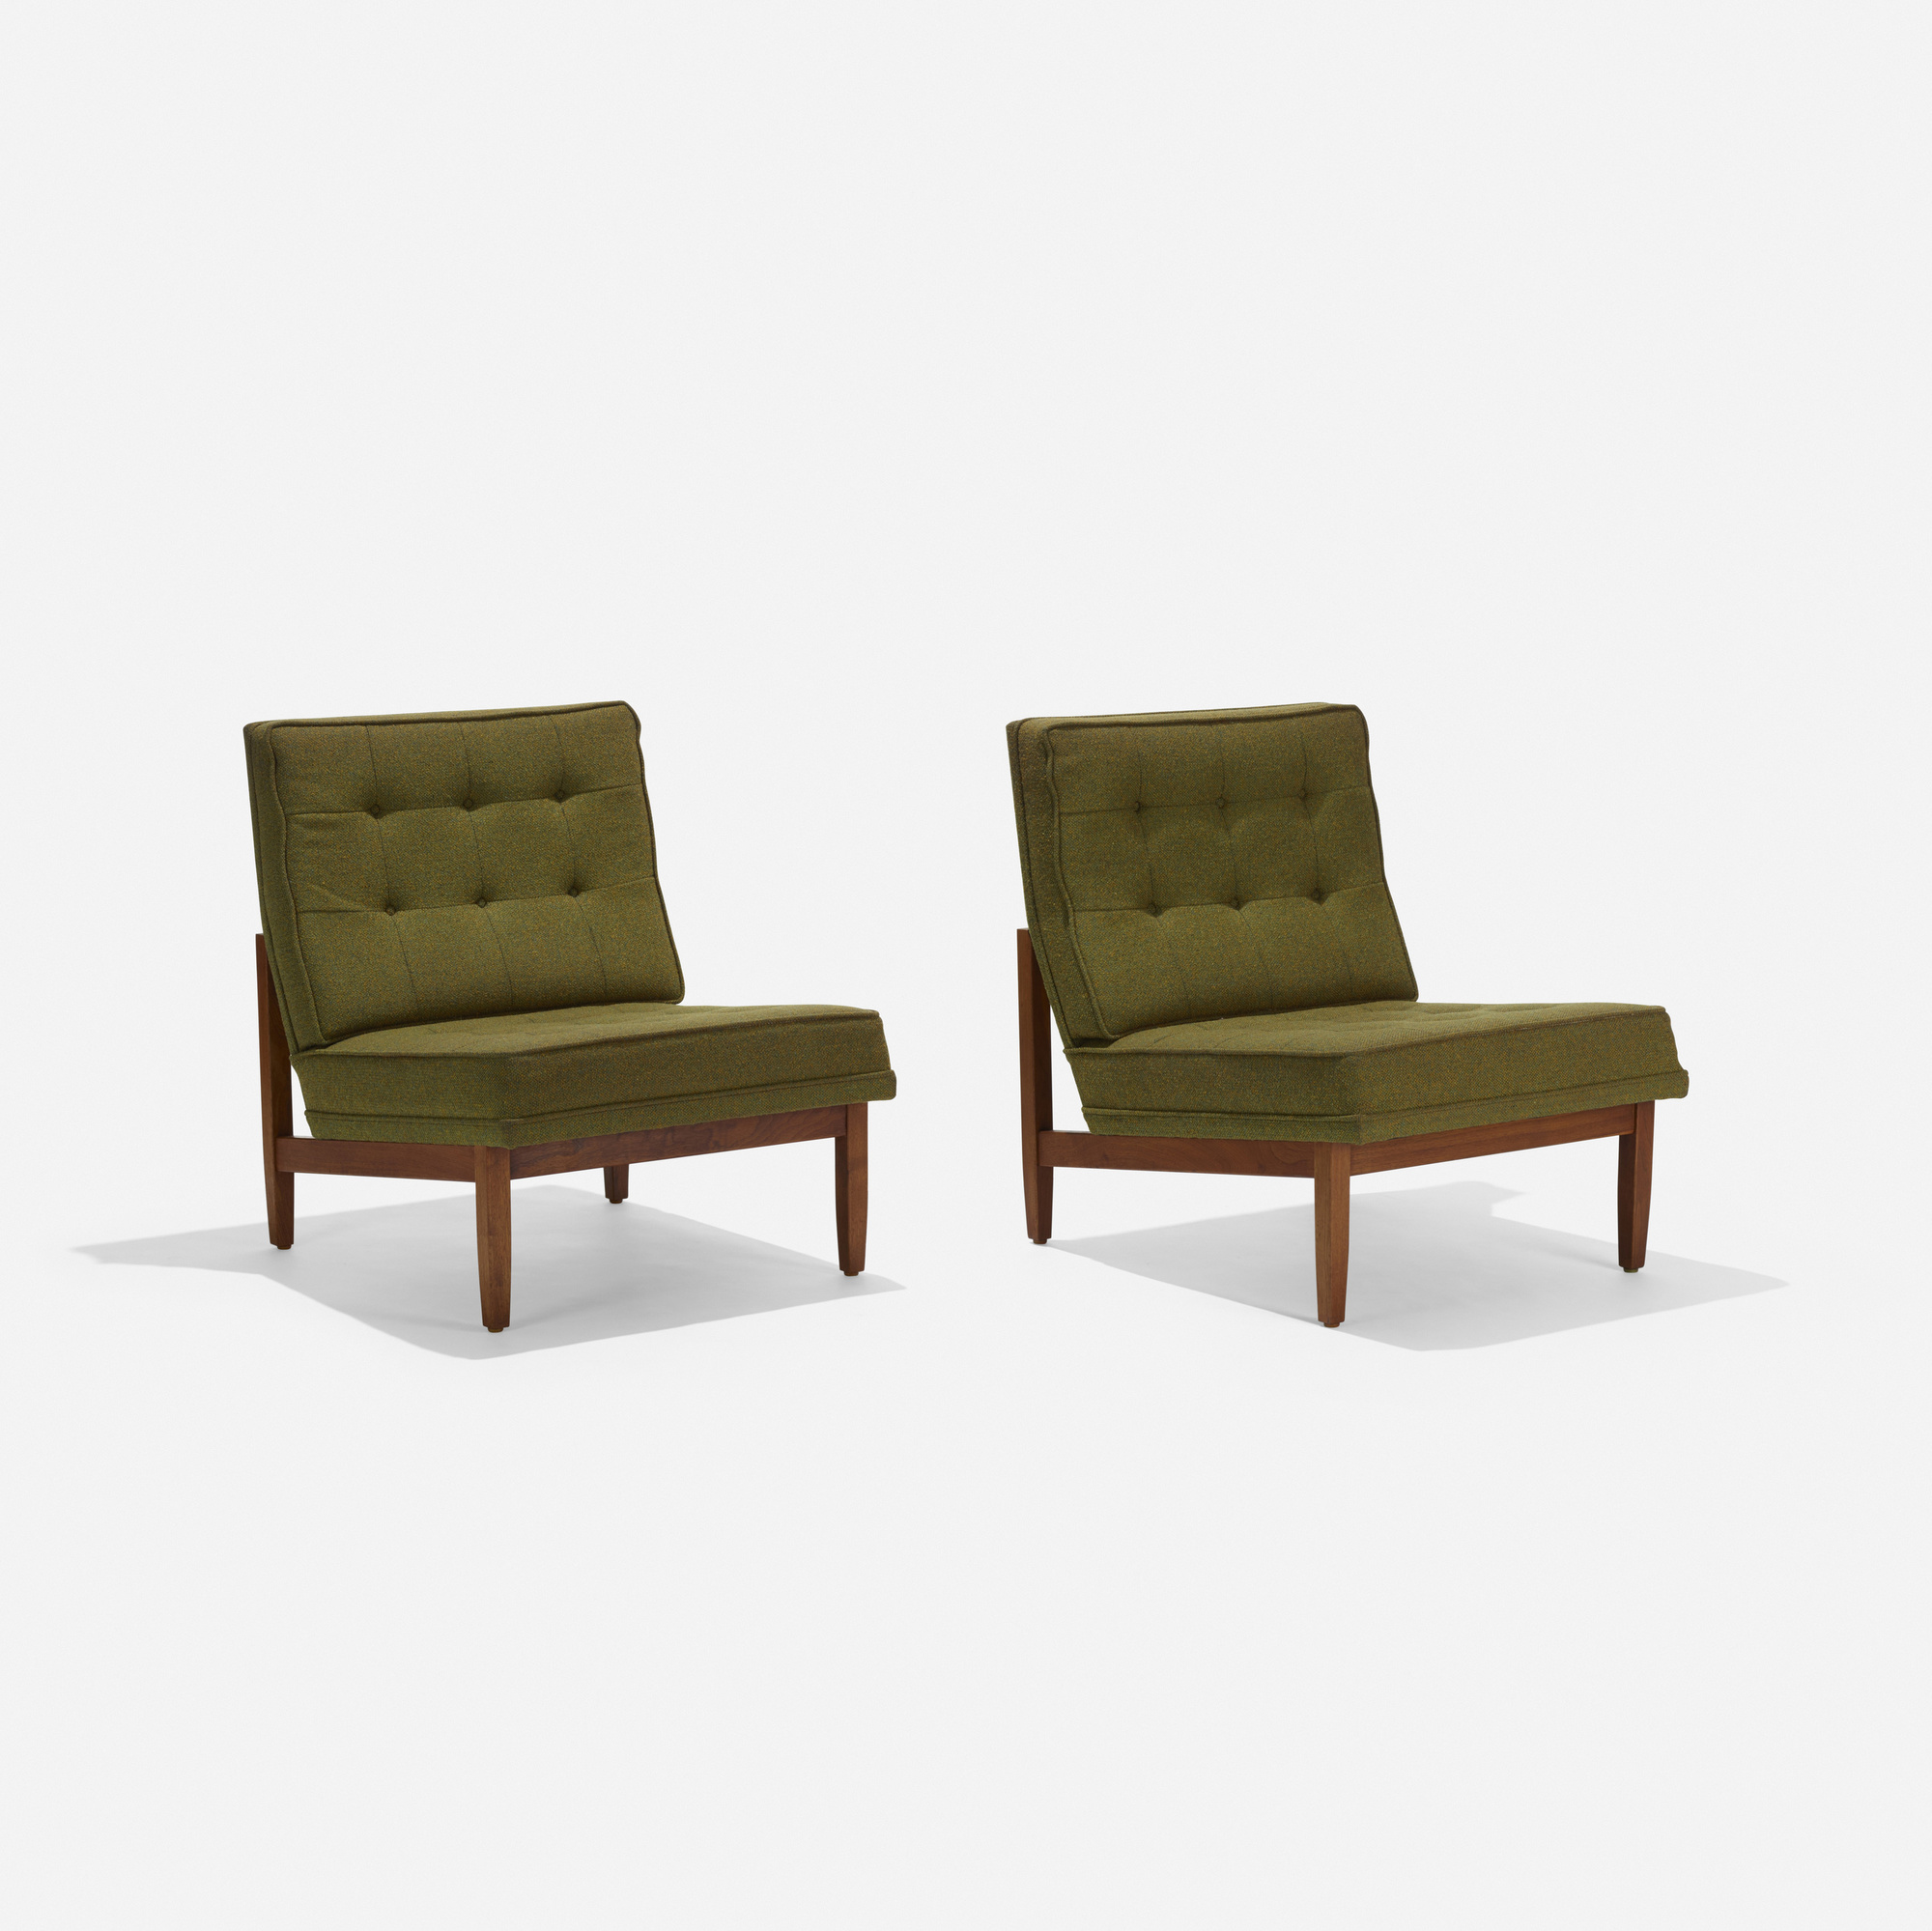 111: Florence Knoll / lounge chairs, pair (2 of 3)